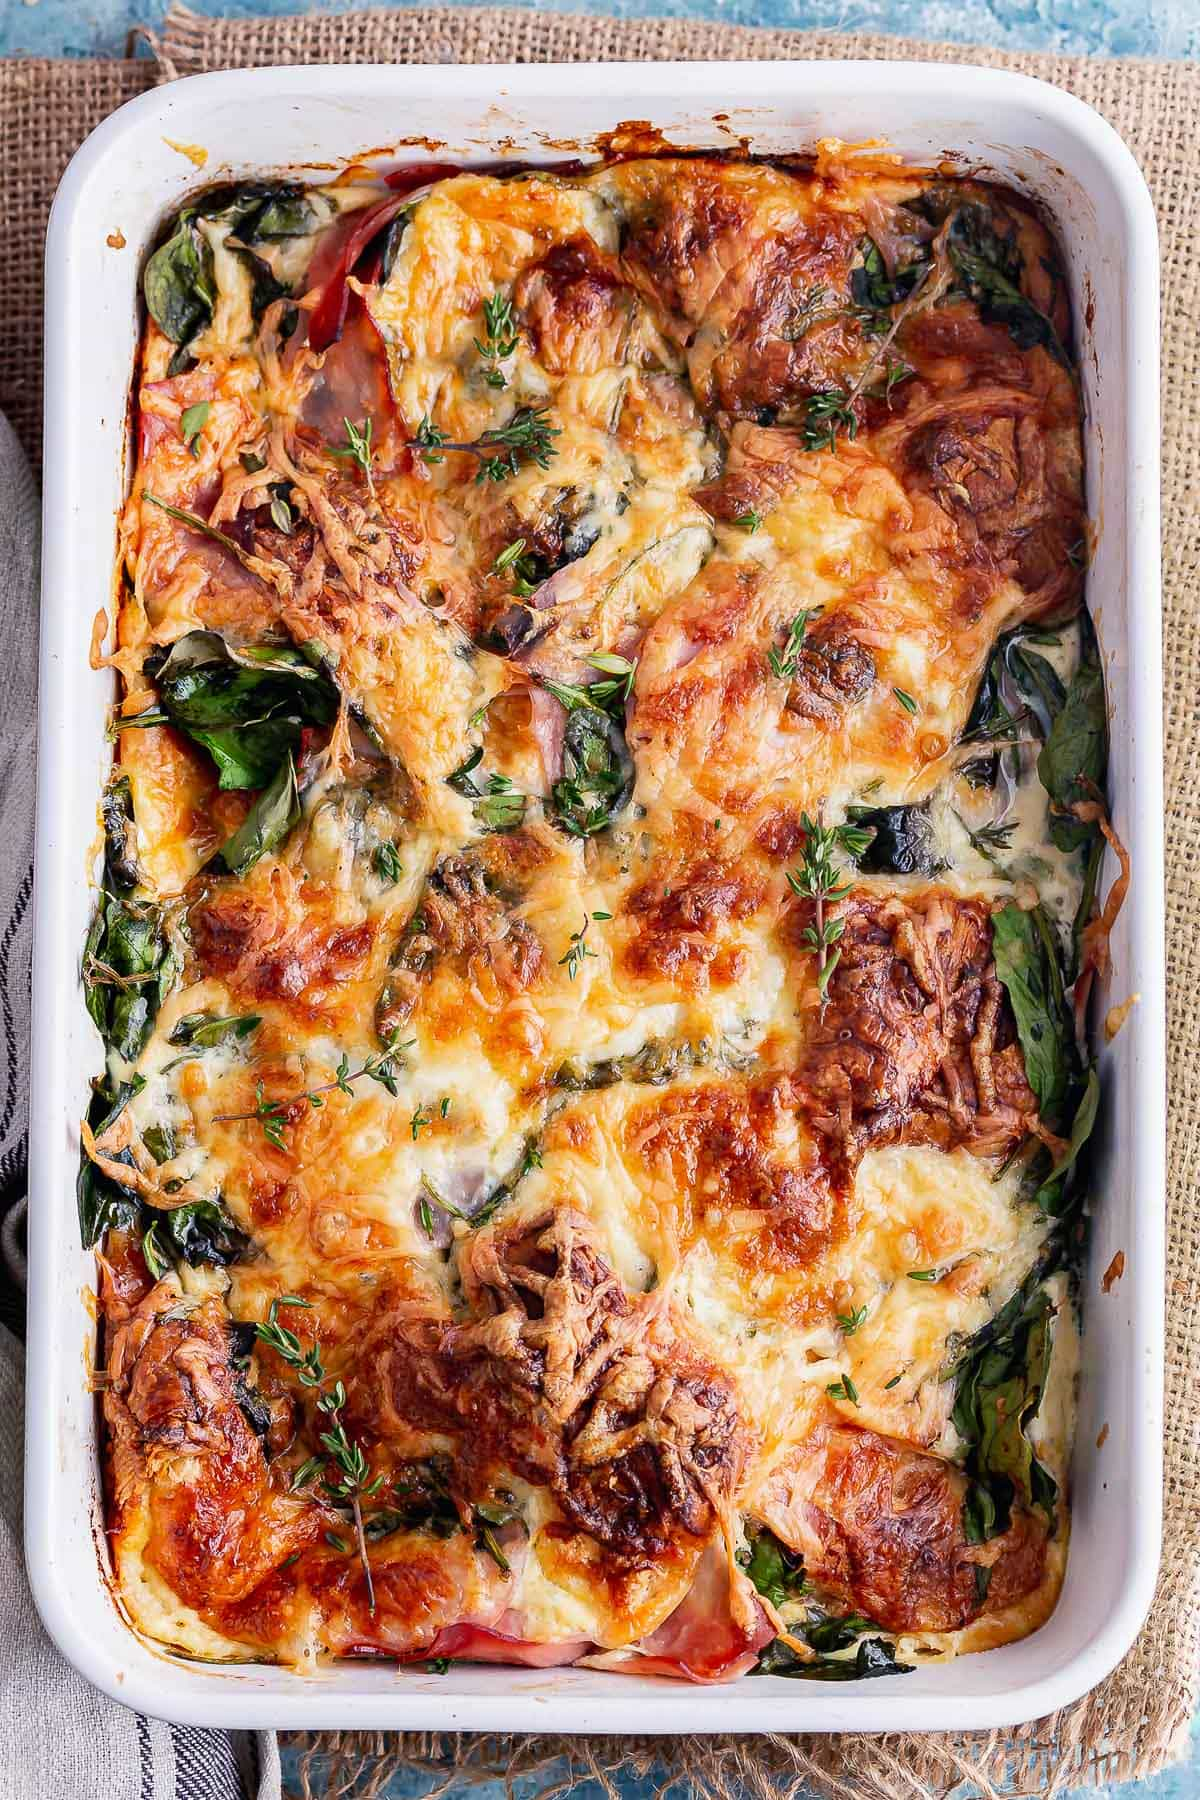 Overhead shot of cheesy breakfast casserole with spinach